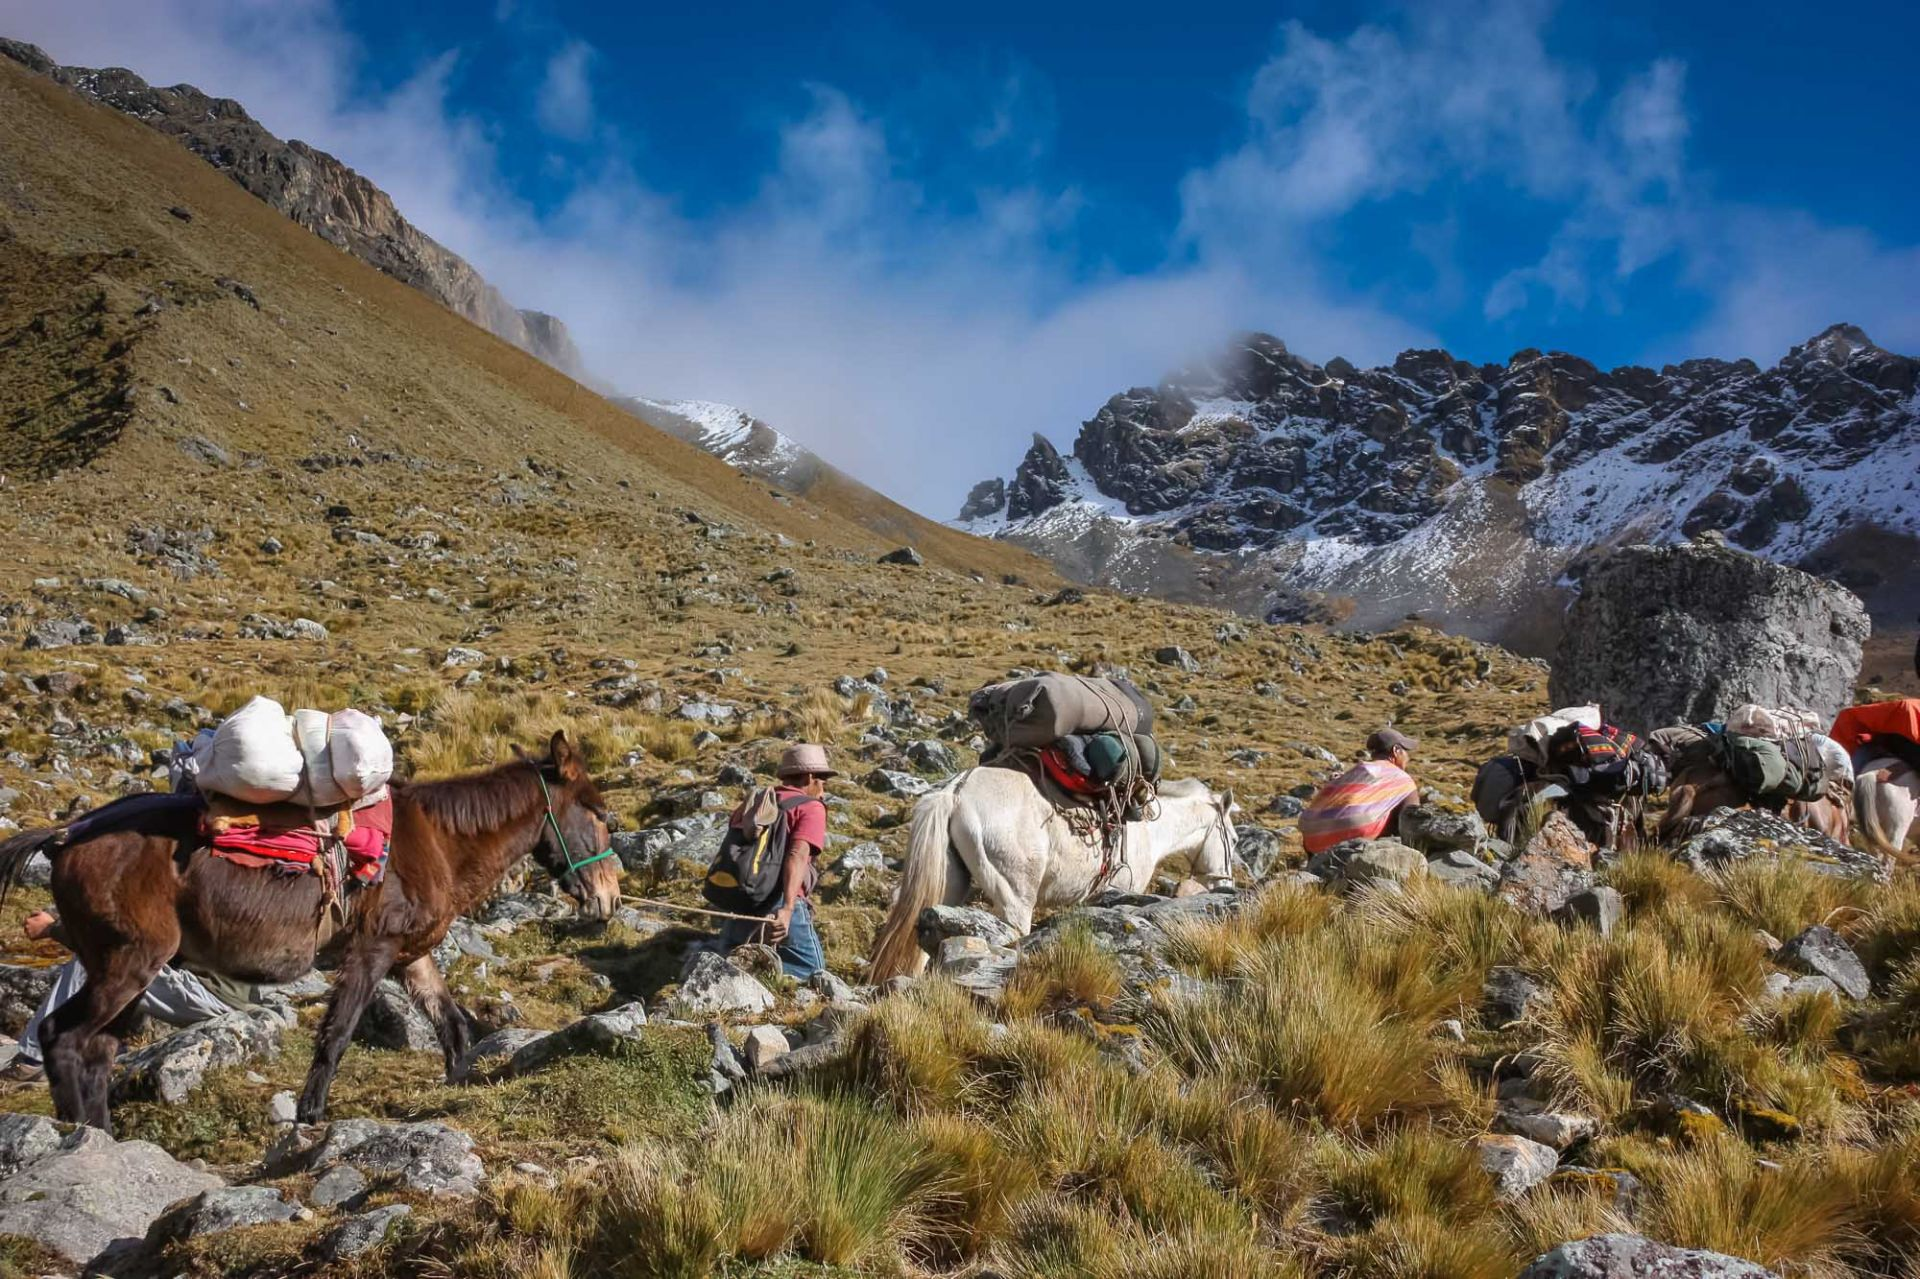 Hiking the Salkantay Trek in Peru